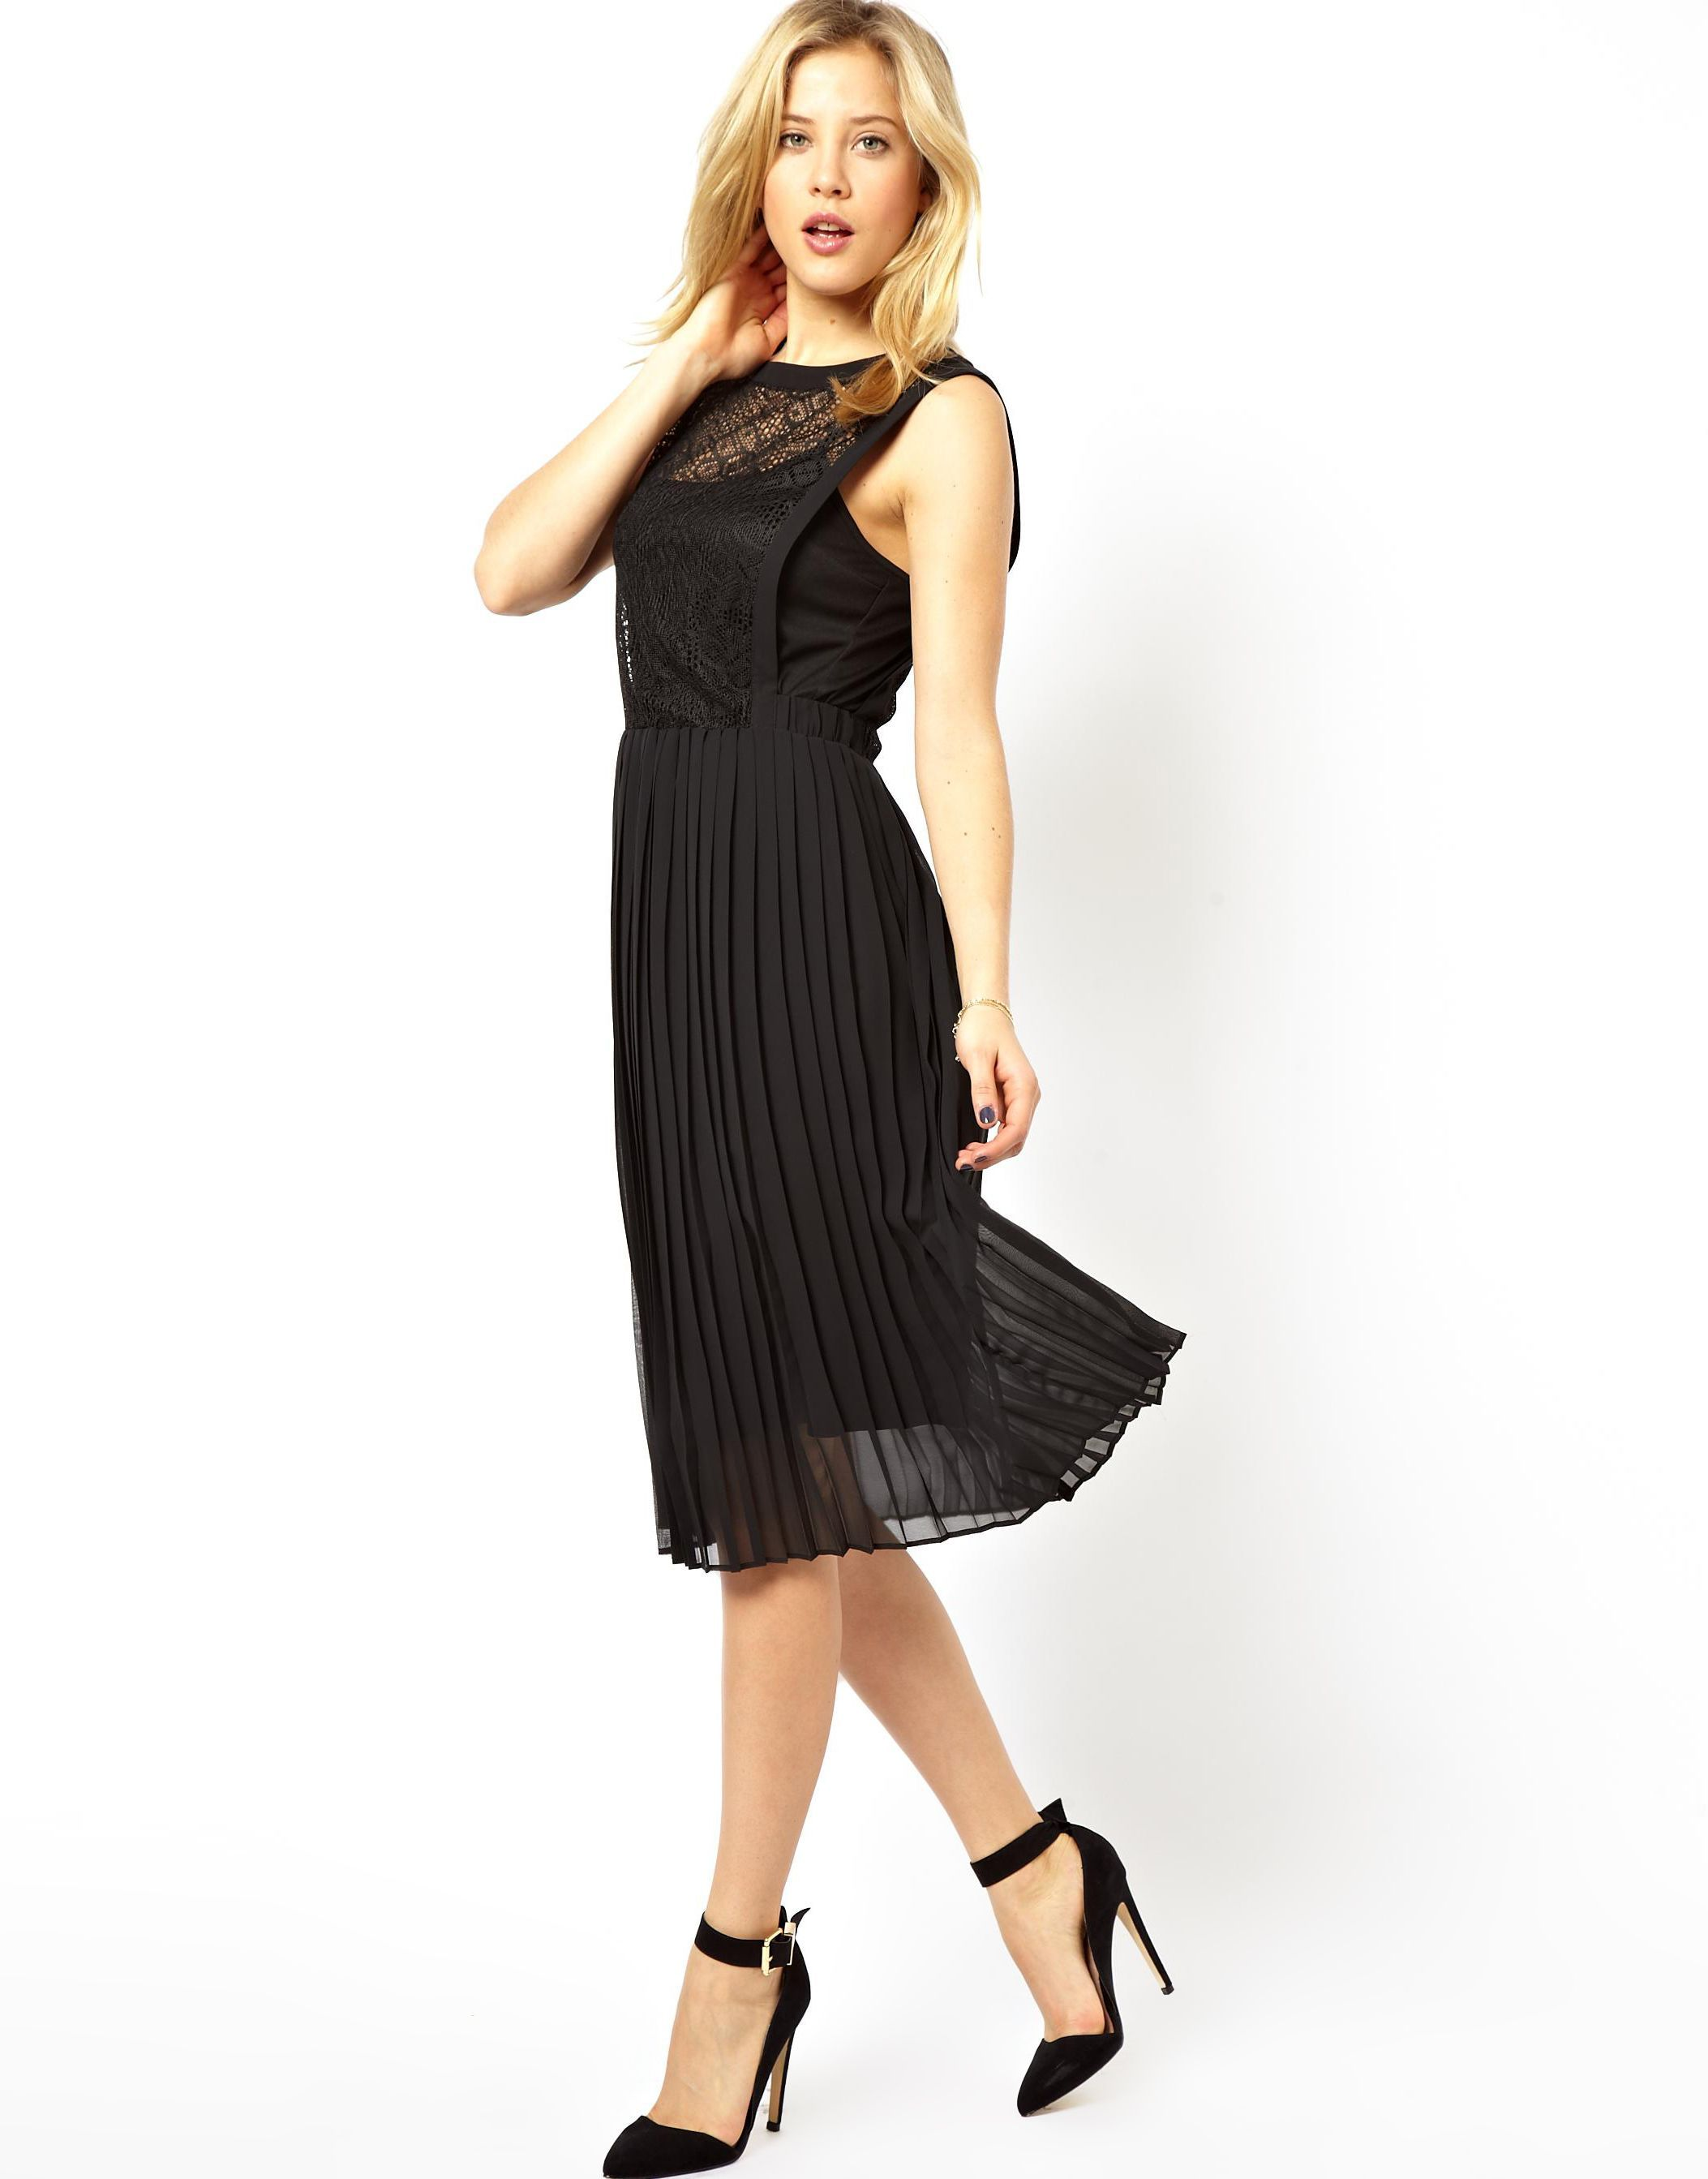 67ac53759 us.asos.com ---- asos black-lace-pleated-skirt-midi-dress ---- Tasha  Franken ---- 3405764 ----